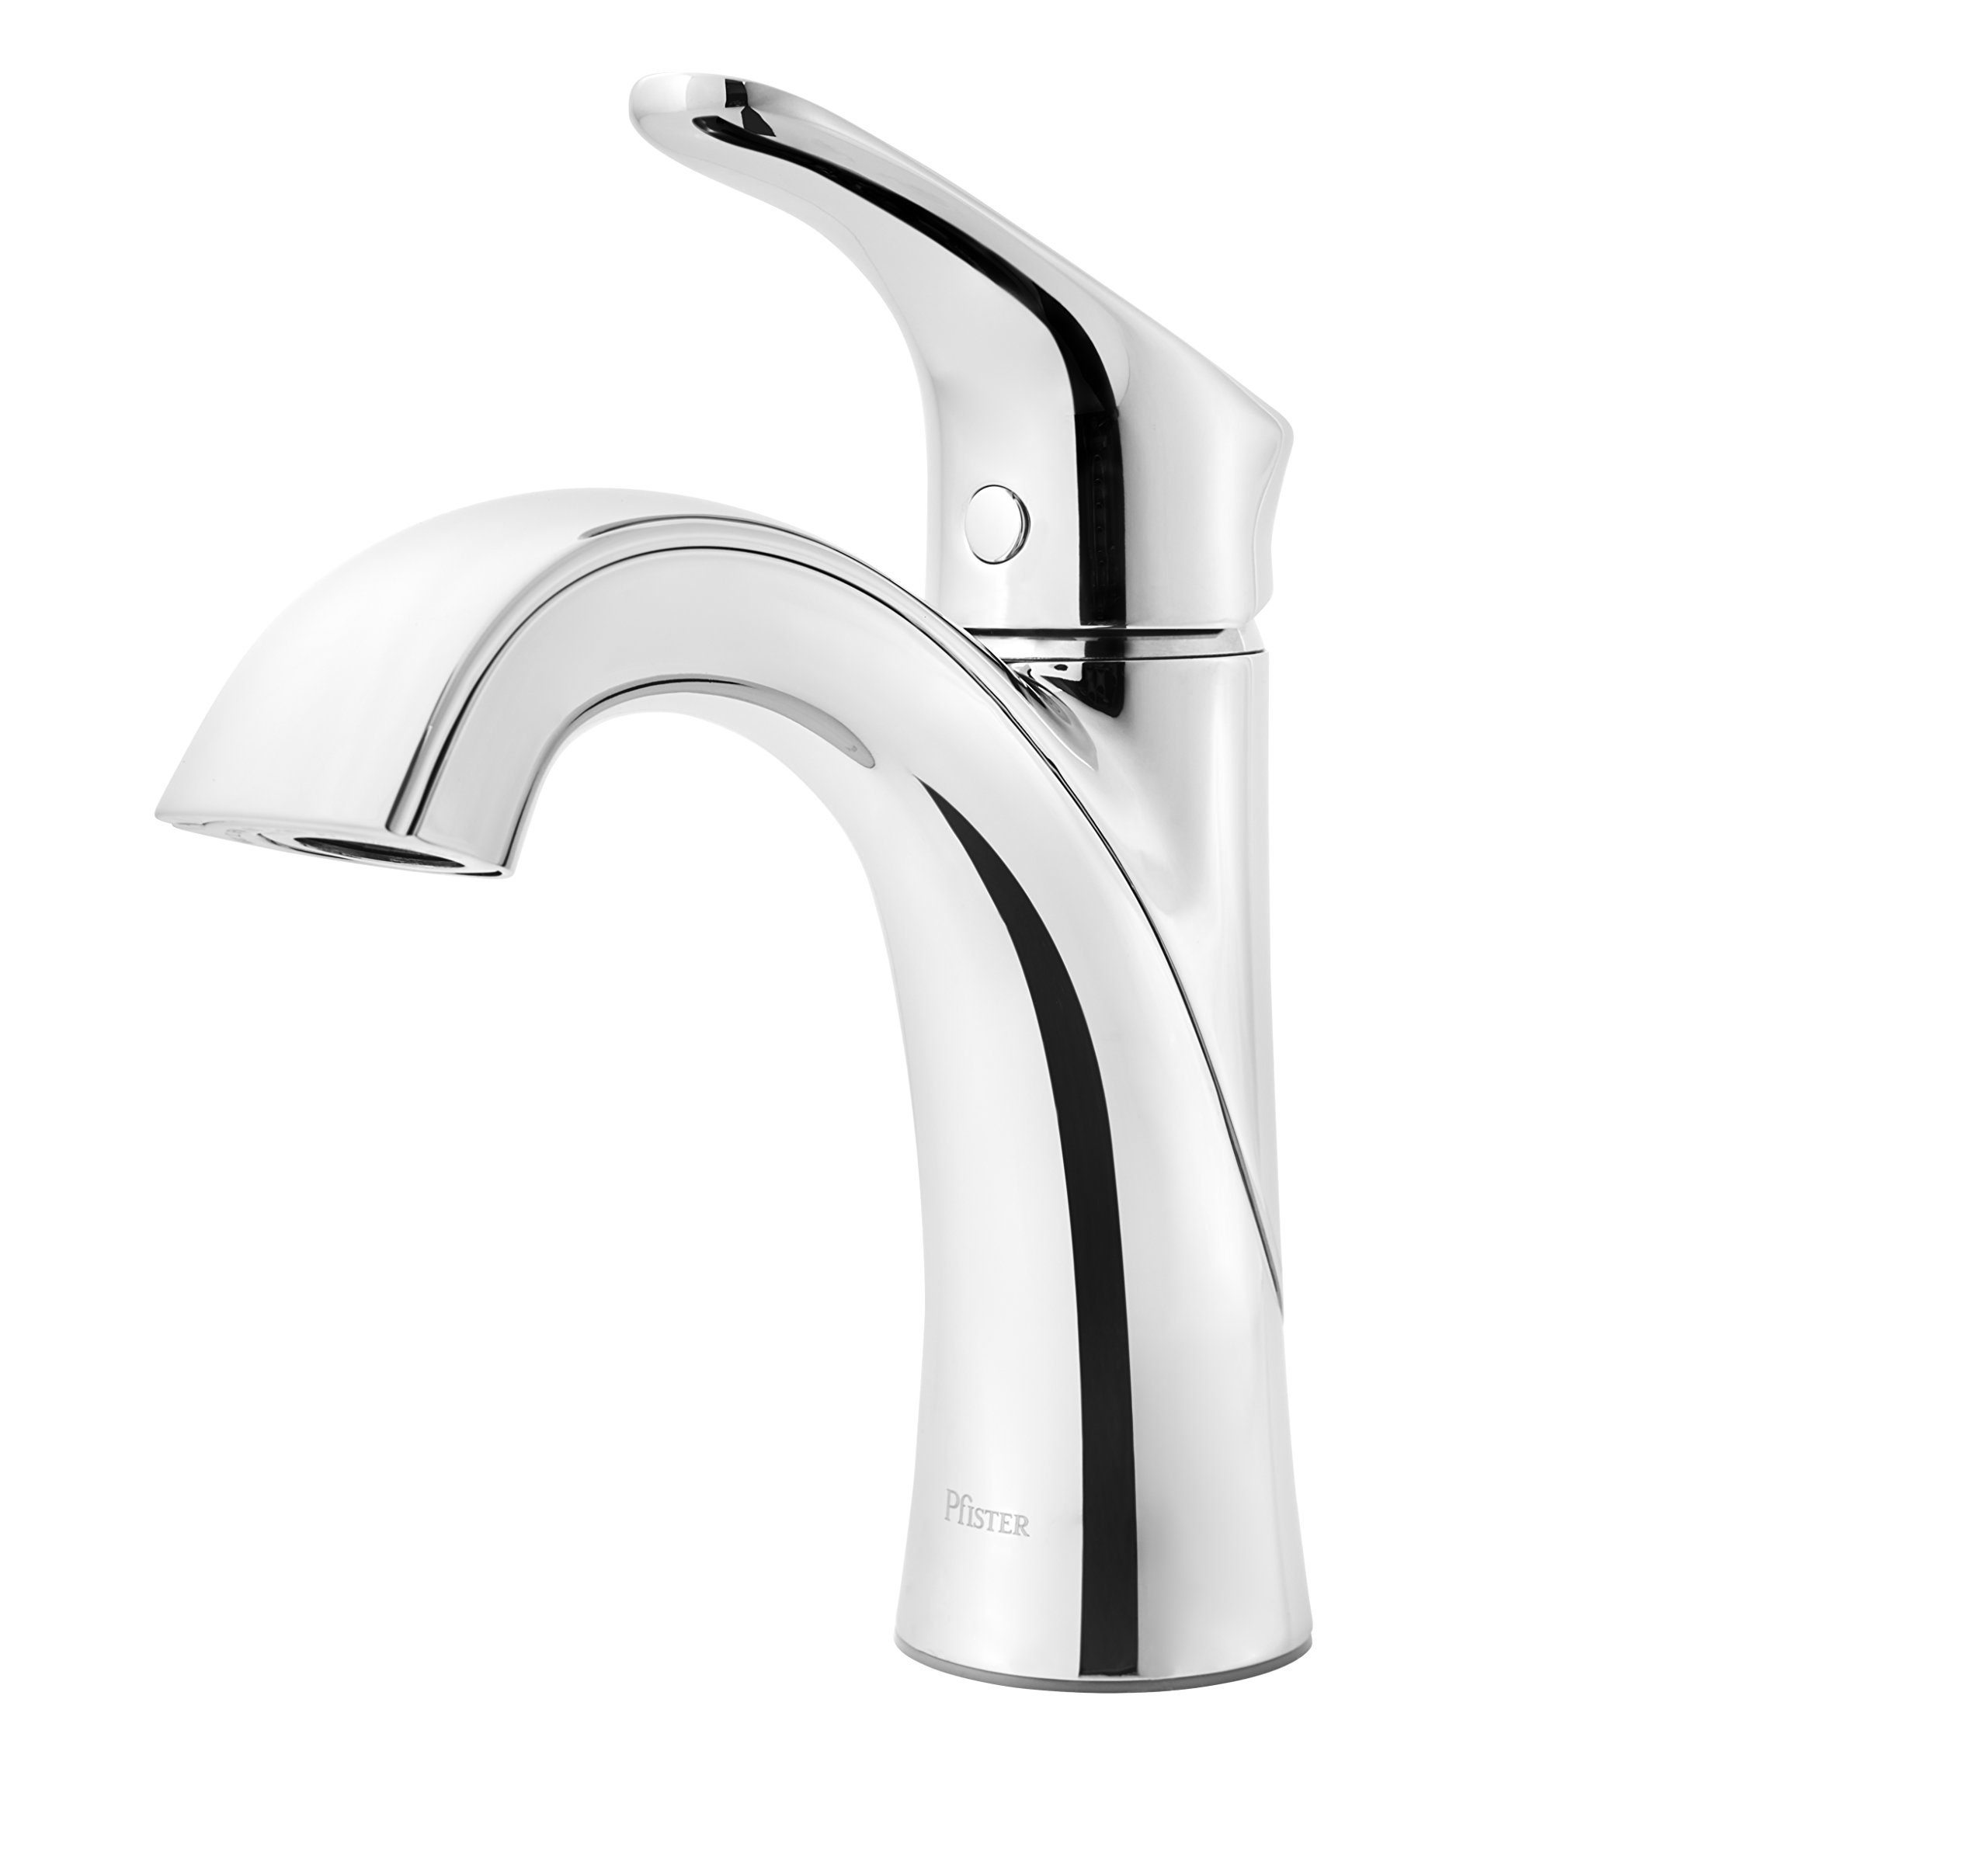 Pfister Weller LG42-WR0C Single Control Bath Faucet, in Polished Chrome by Pfister